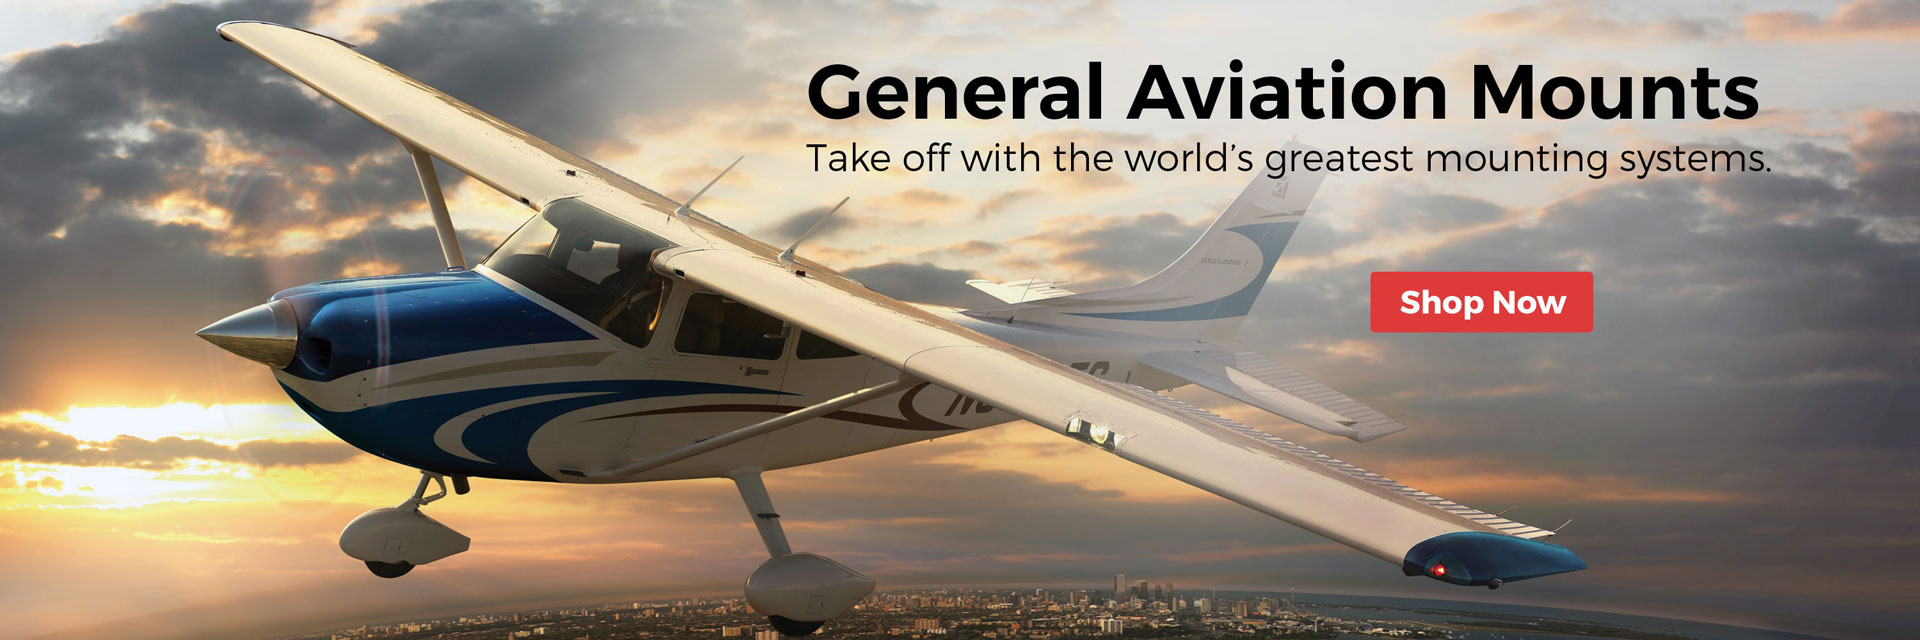 General Aviation Mounts